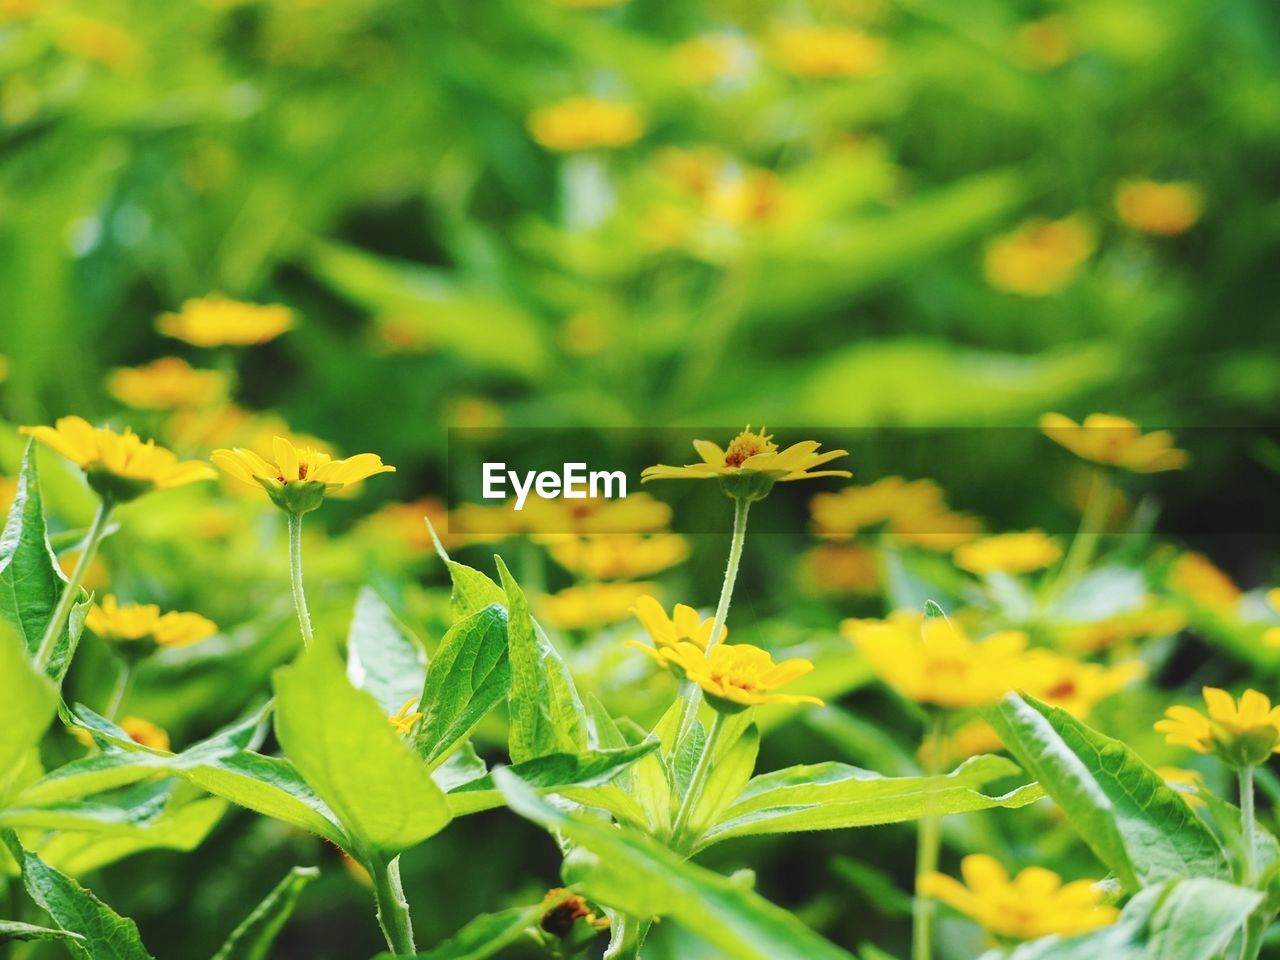 growth, plant, beauty in nature, green color, freshness, flower, yellow, flowering plant, fragility, nature, vulnerability, day, close-up, plant part, leaf, no people, field, selective focus, focus on foreground, land, outdoors, flower head, flowerbed